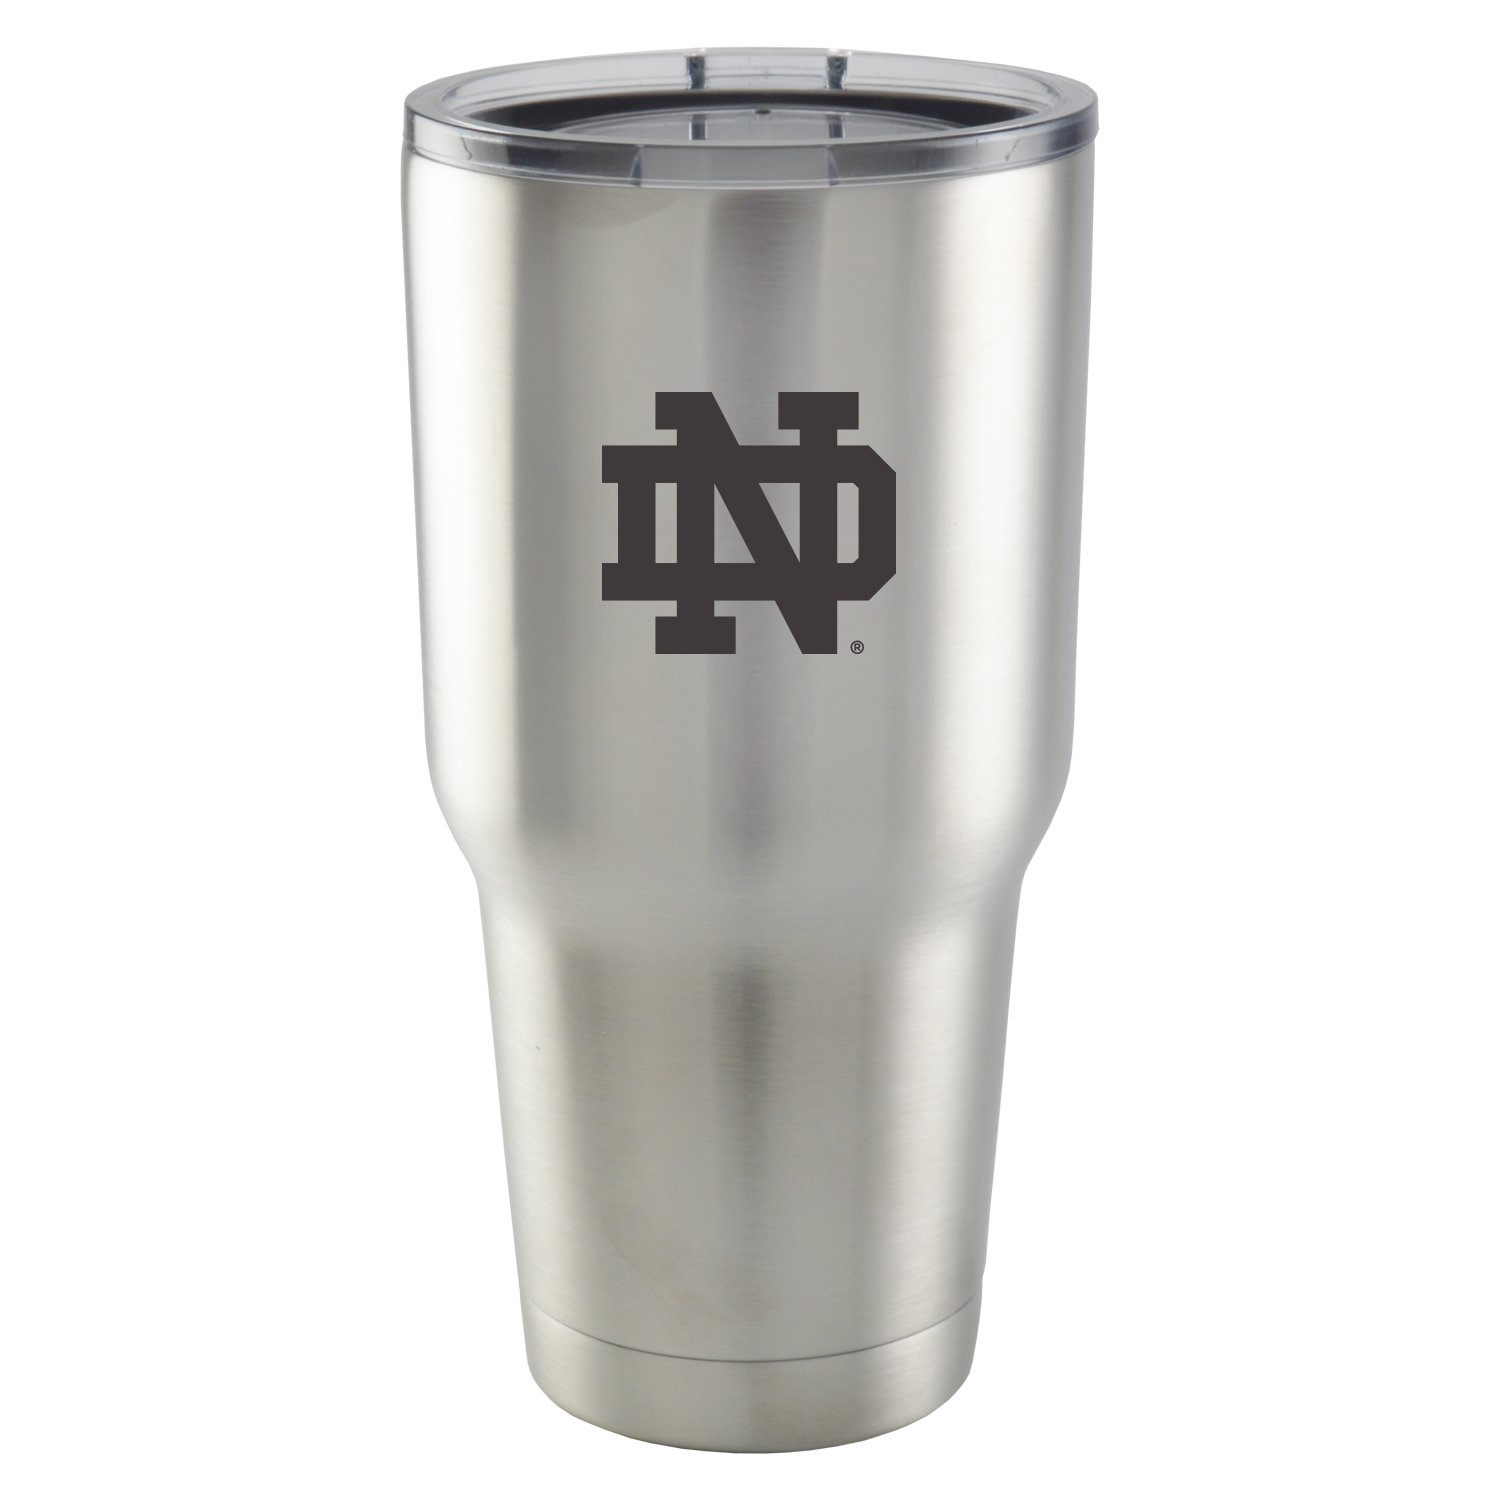 University of Notre Dame|30 oz Vacuum Insulated Stainless Steel Tumbler with Acrylic Lid|BPA Free|Collegiate Licensed NCAA Product|